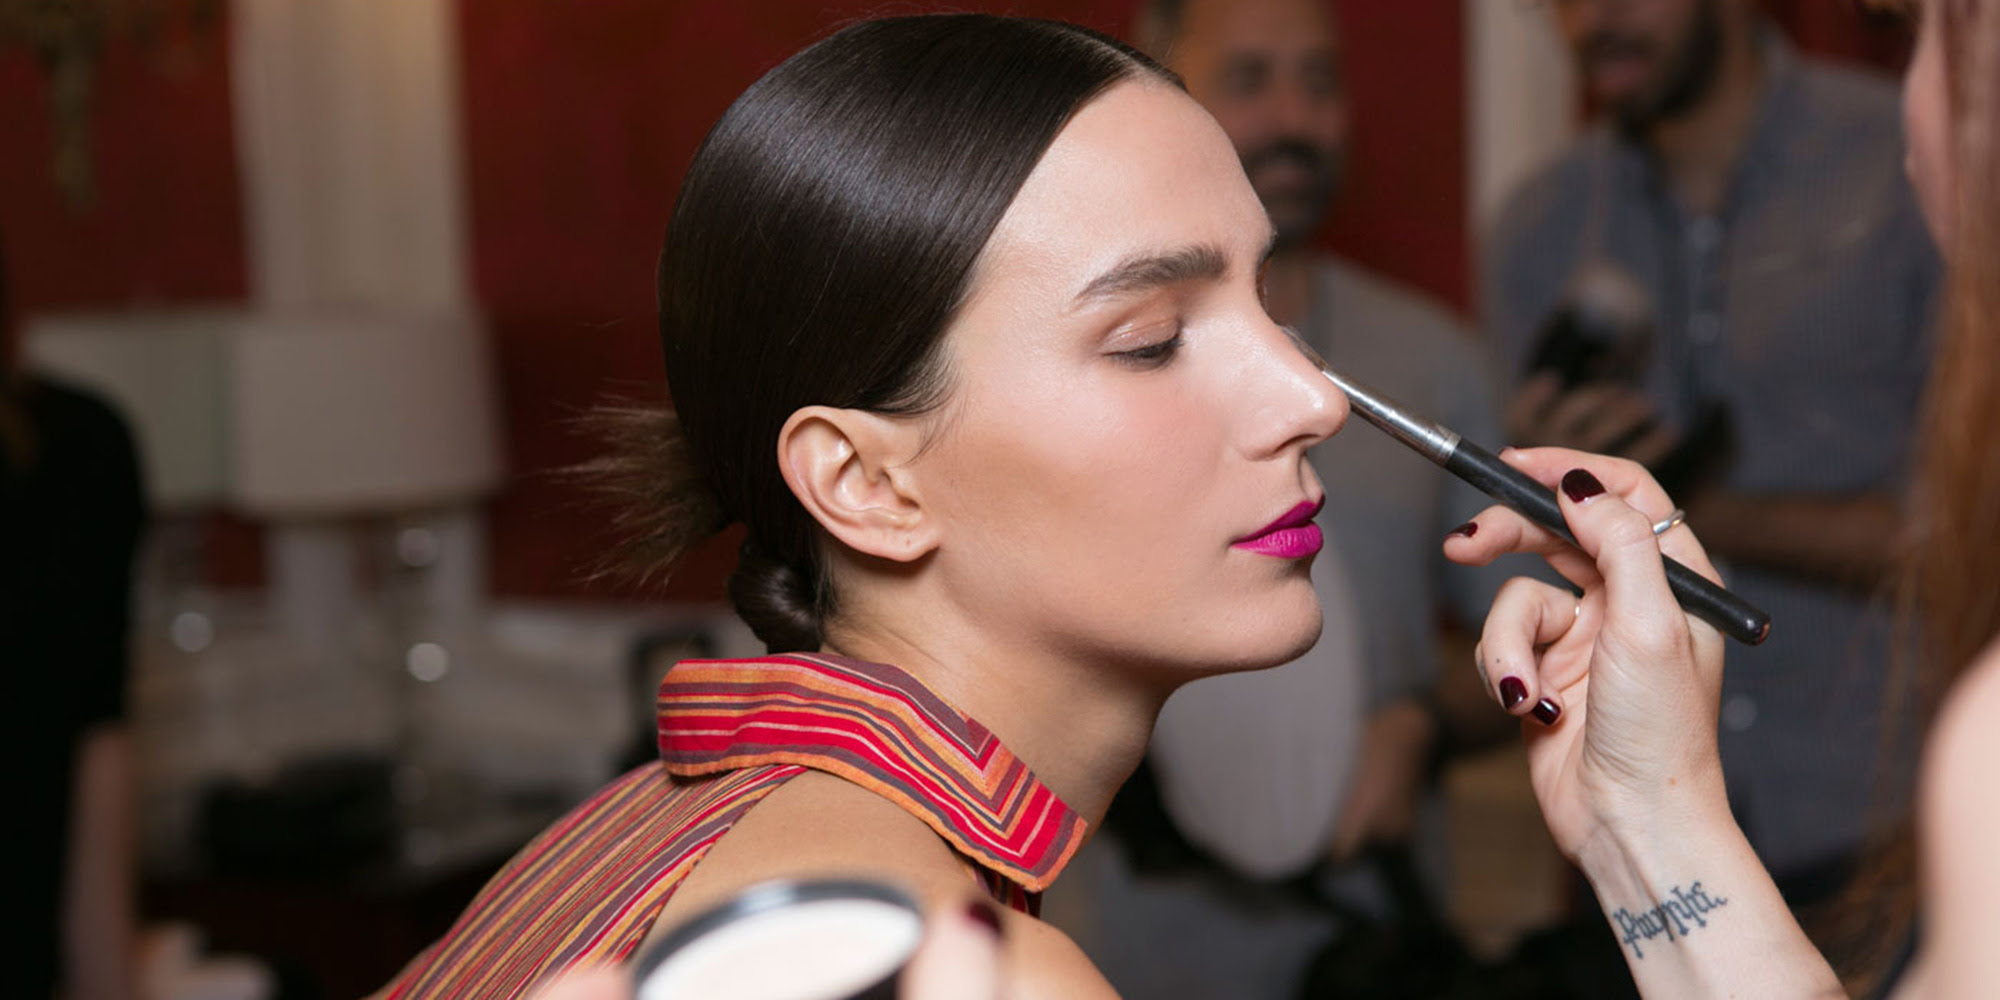 OUR 10 FAVORITE CONCEALERS FOR EVERY SKIN TONE AND COVERAGE LEVEL